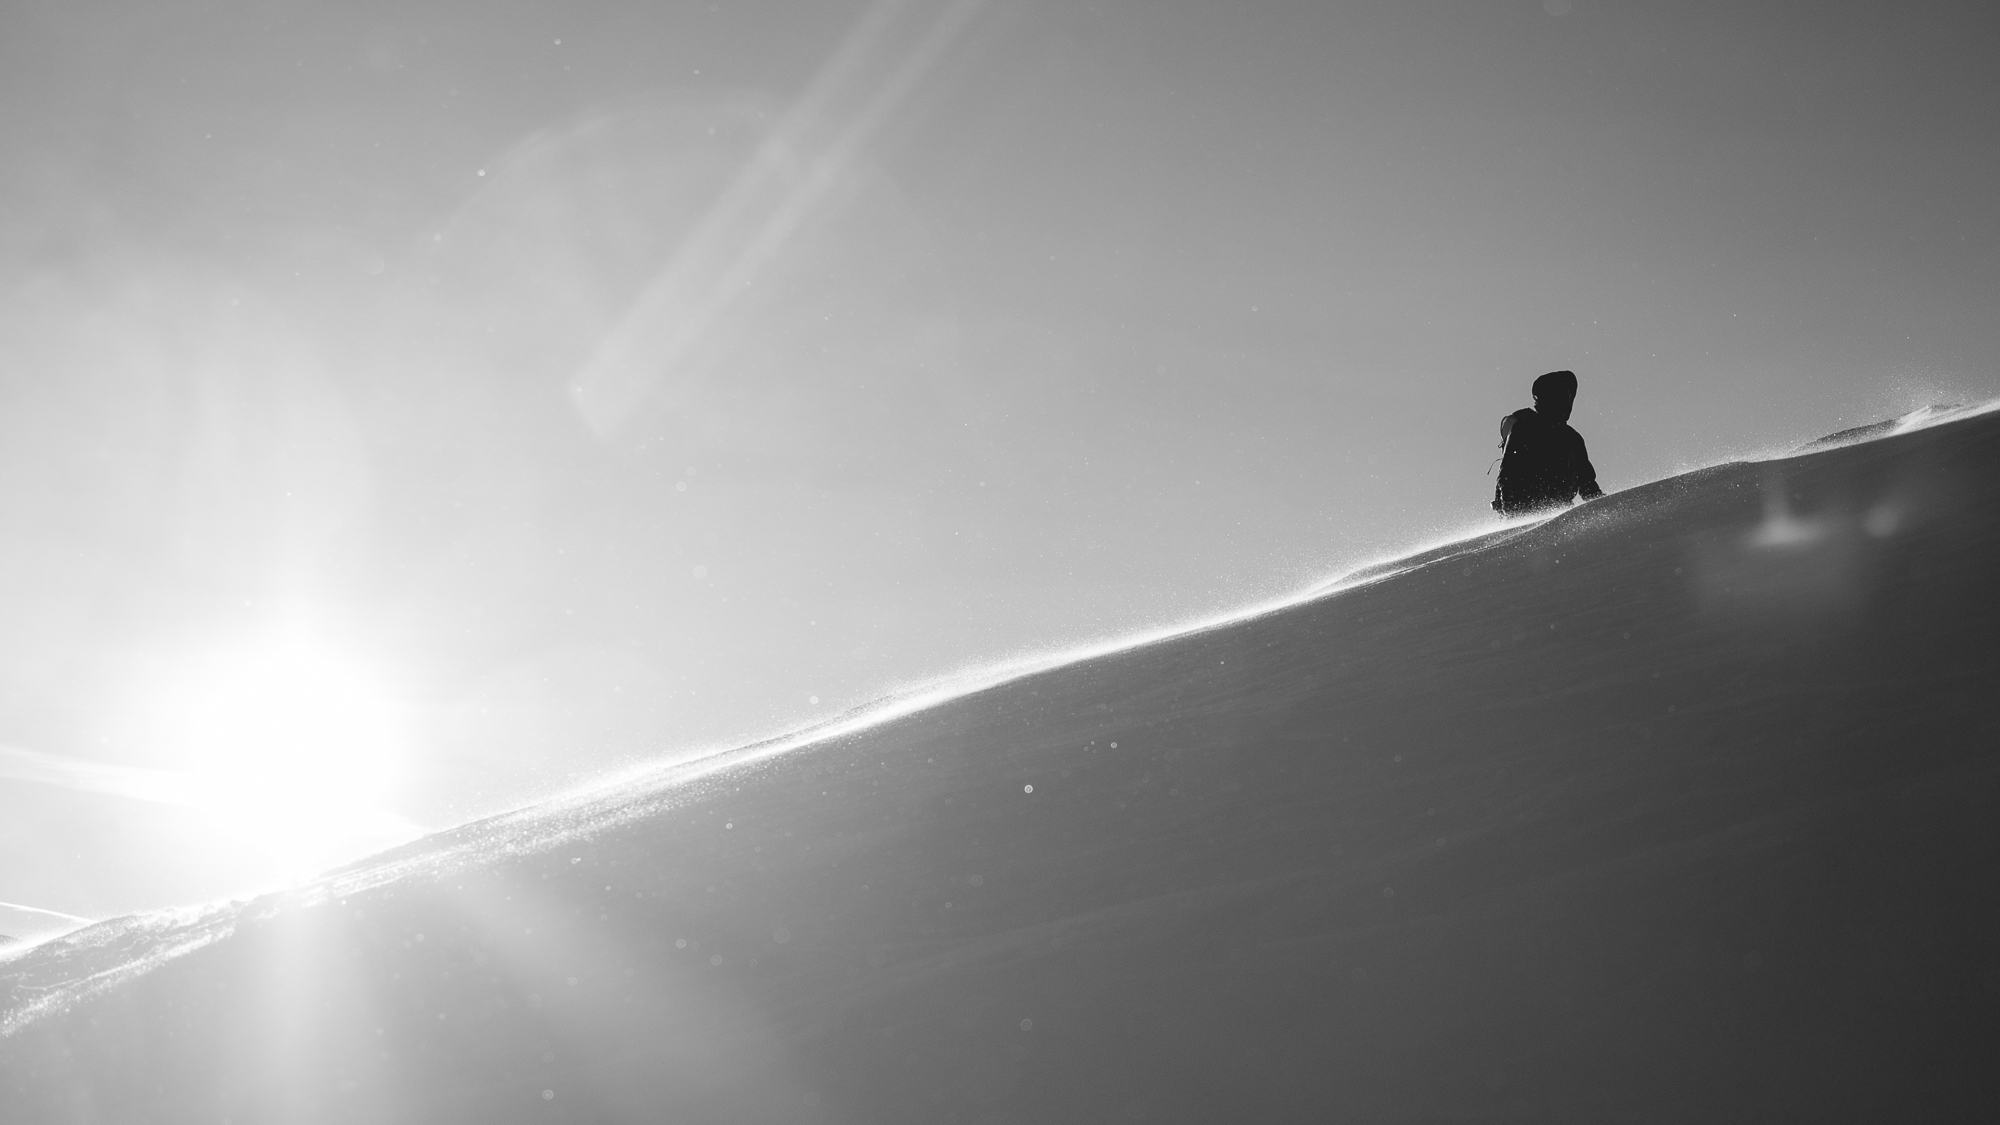 B&W Ridge snow